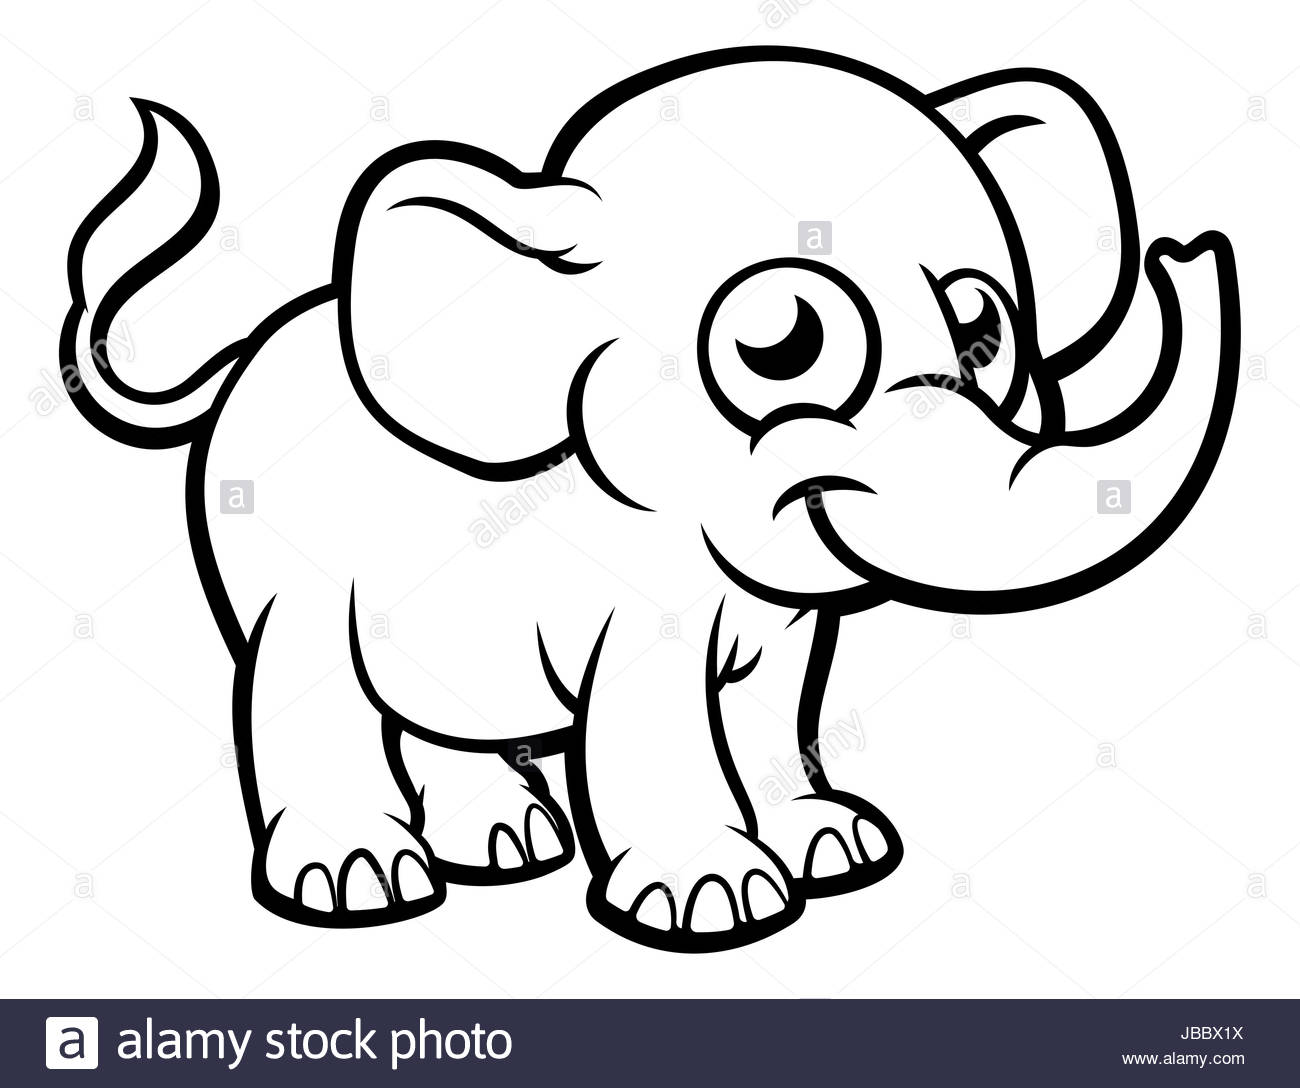 Outline Of An Elephant